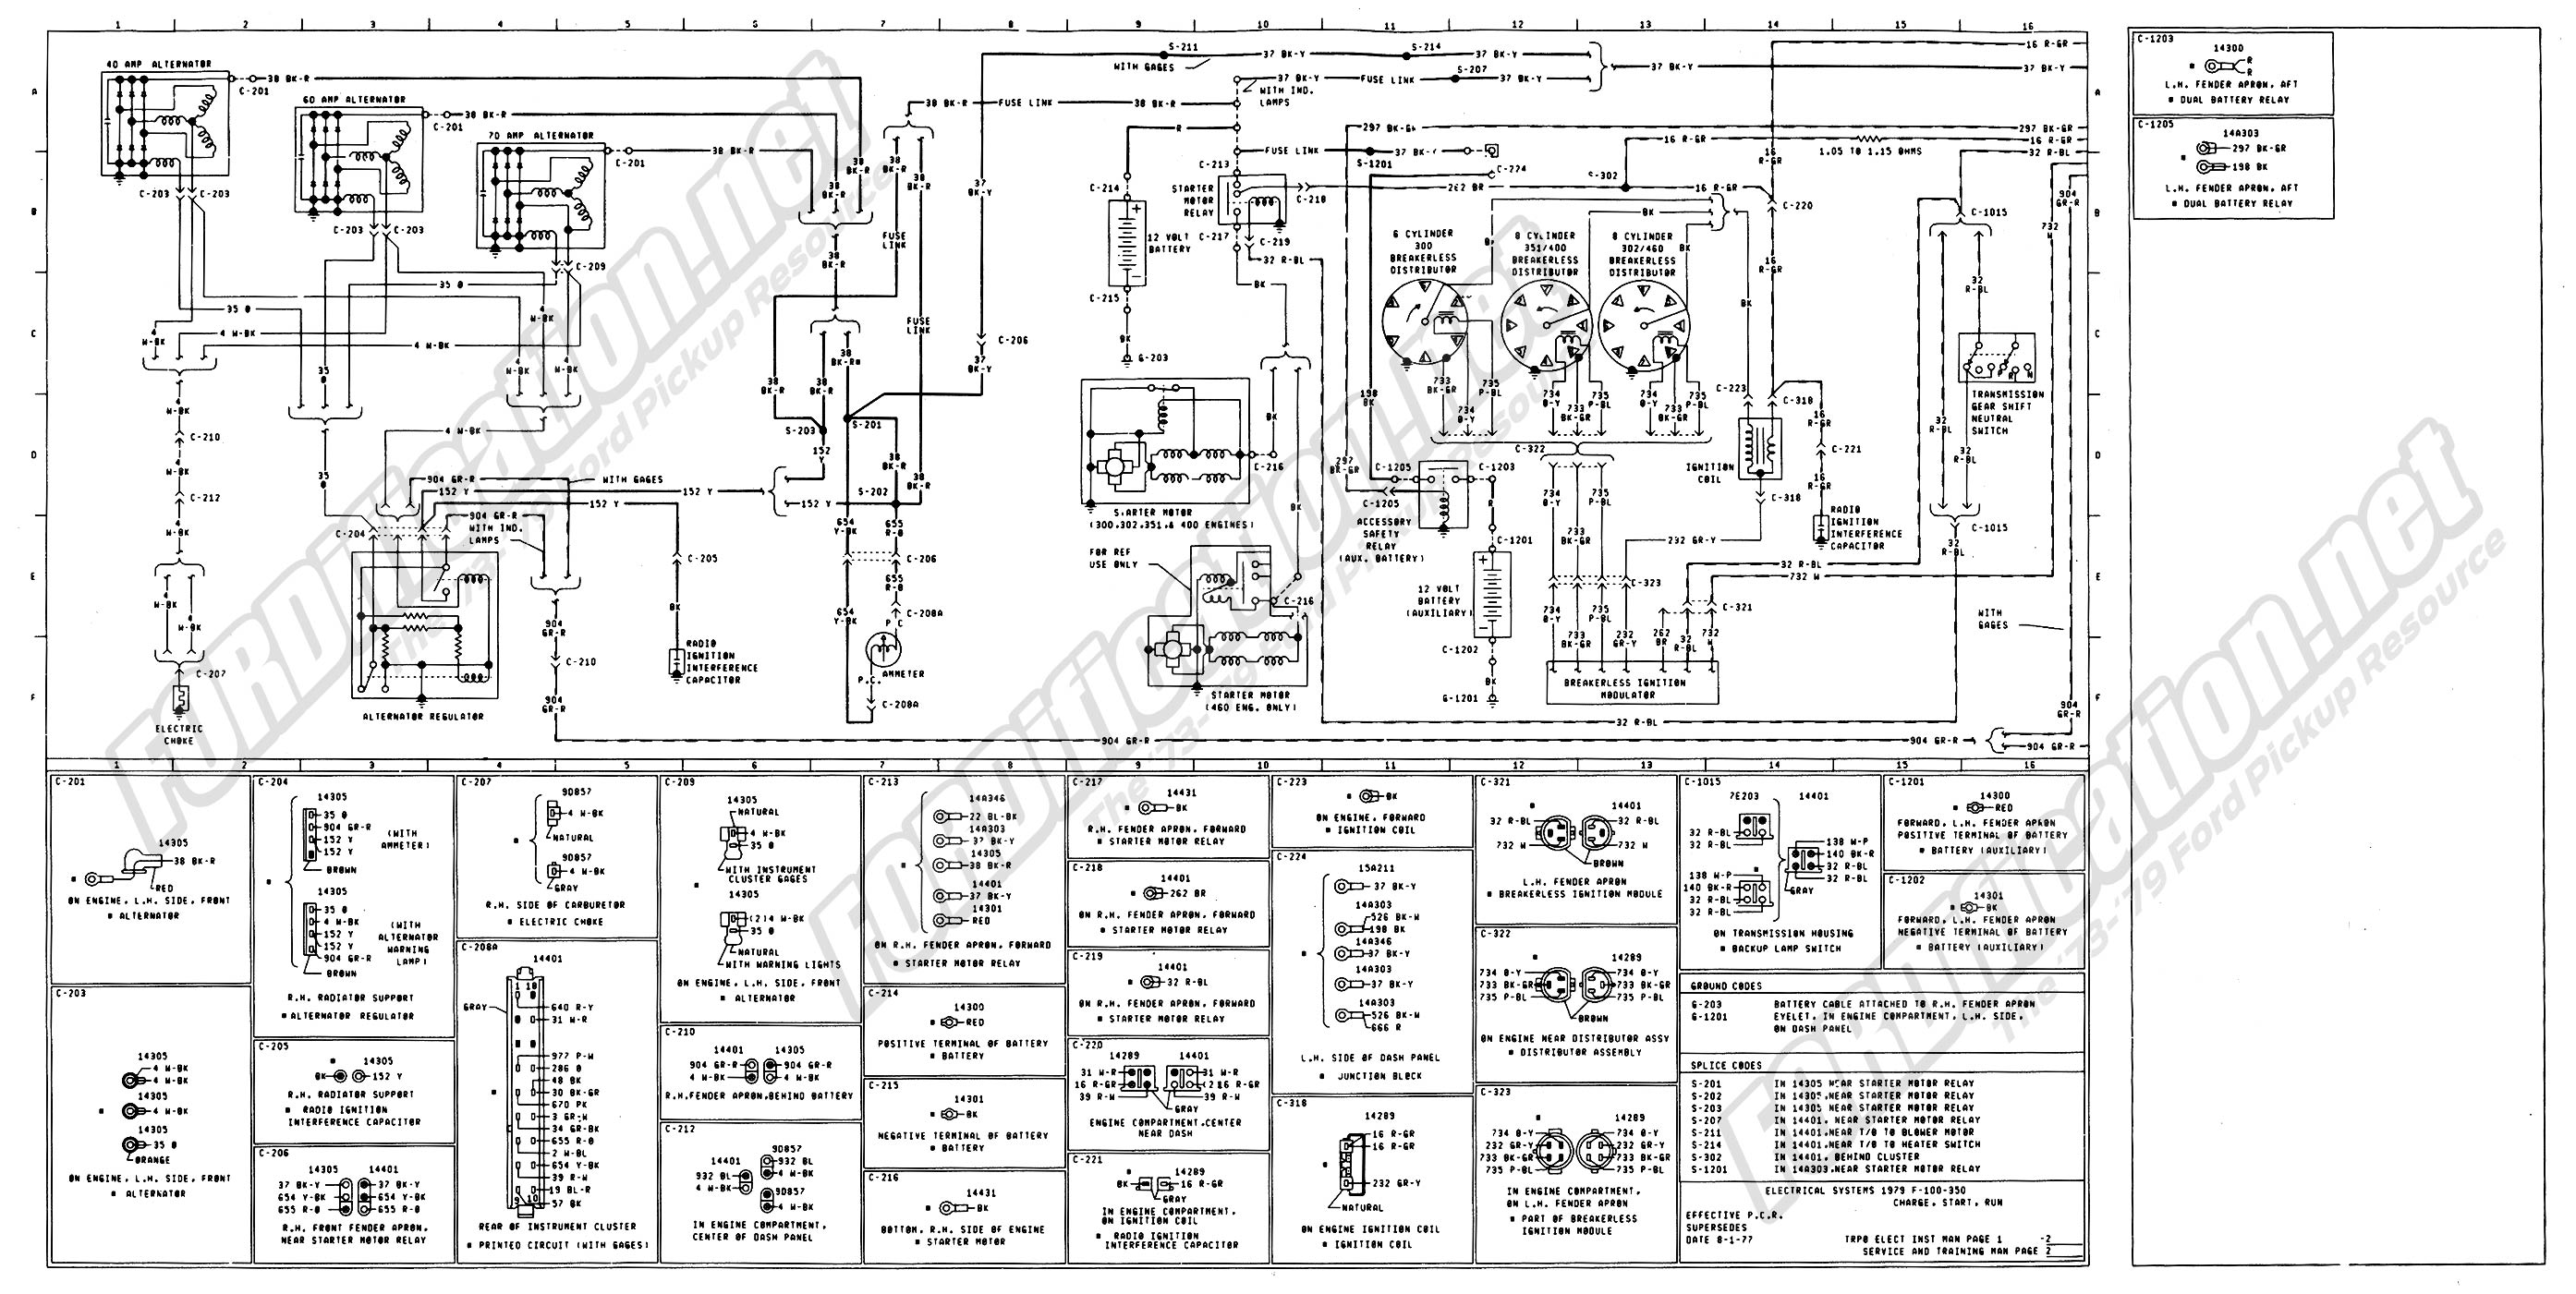 wiring_79master_2of9 1973 1979 ford truck wiring diagrams & schematics fordification net 1989 F250 Wiring Diagram at bayanpartner.co